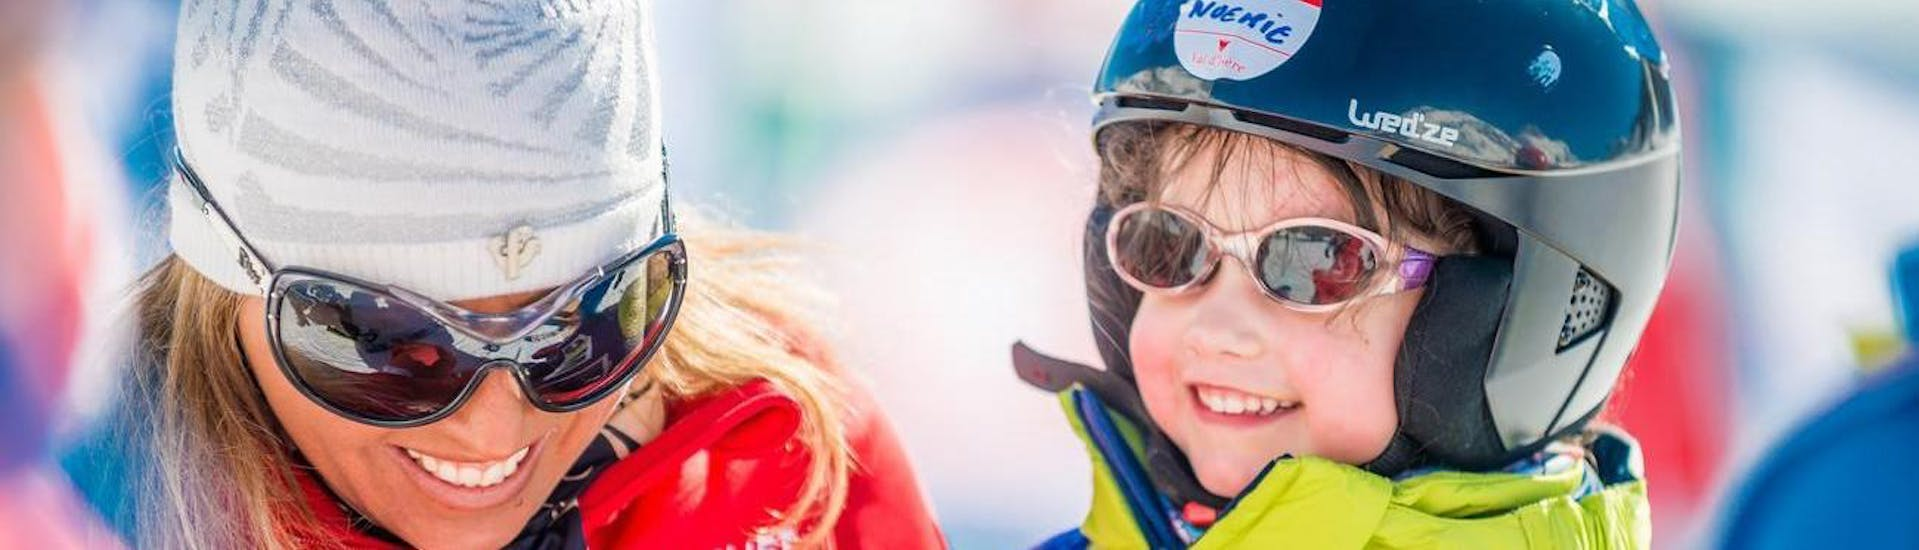 """In the specially designed Kids Ski Lessons """"Max 8"""" (5-12 years) - Advanced, a child is improving the skiing technique under the supervision of an instructor from ESF Val d'Isère."""